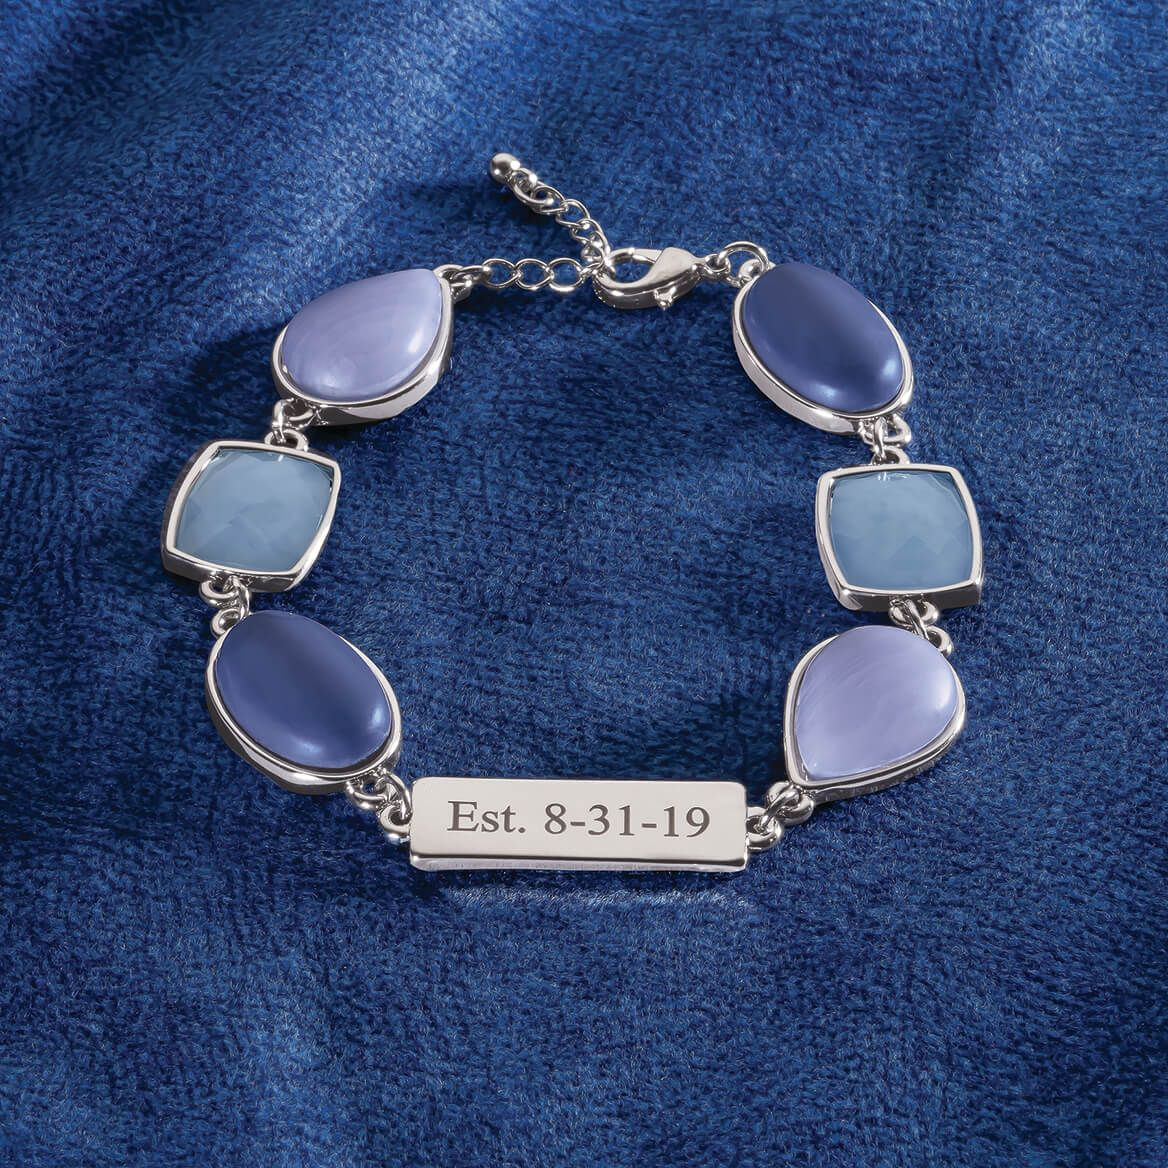 Personalized Blue Stone and Lace Agate Bracelet-369352